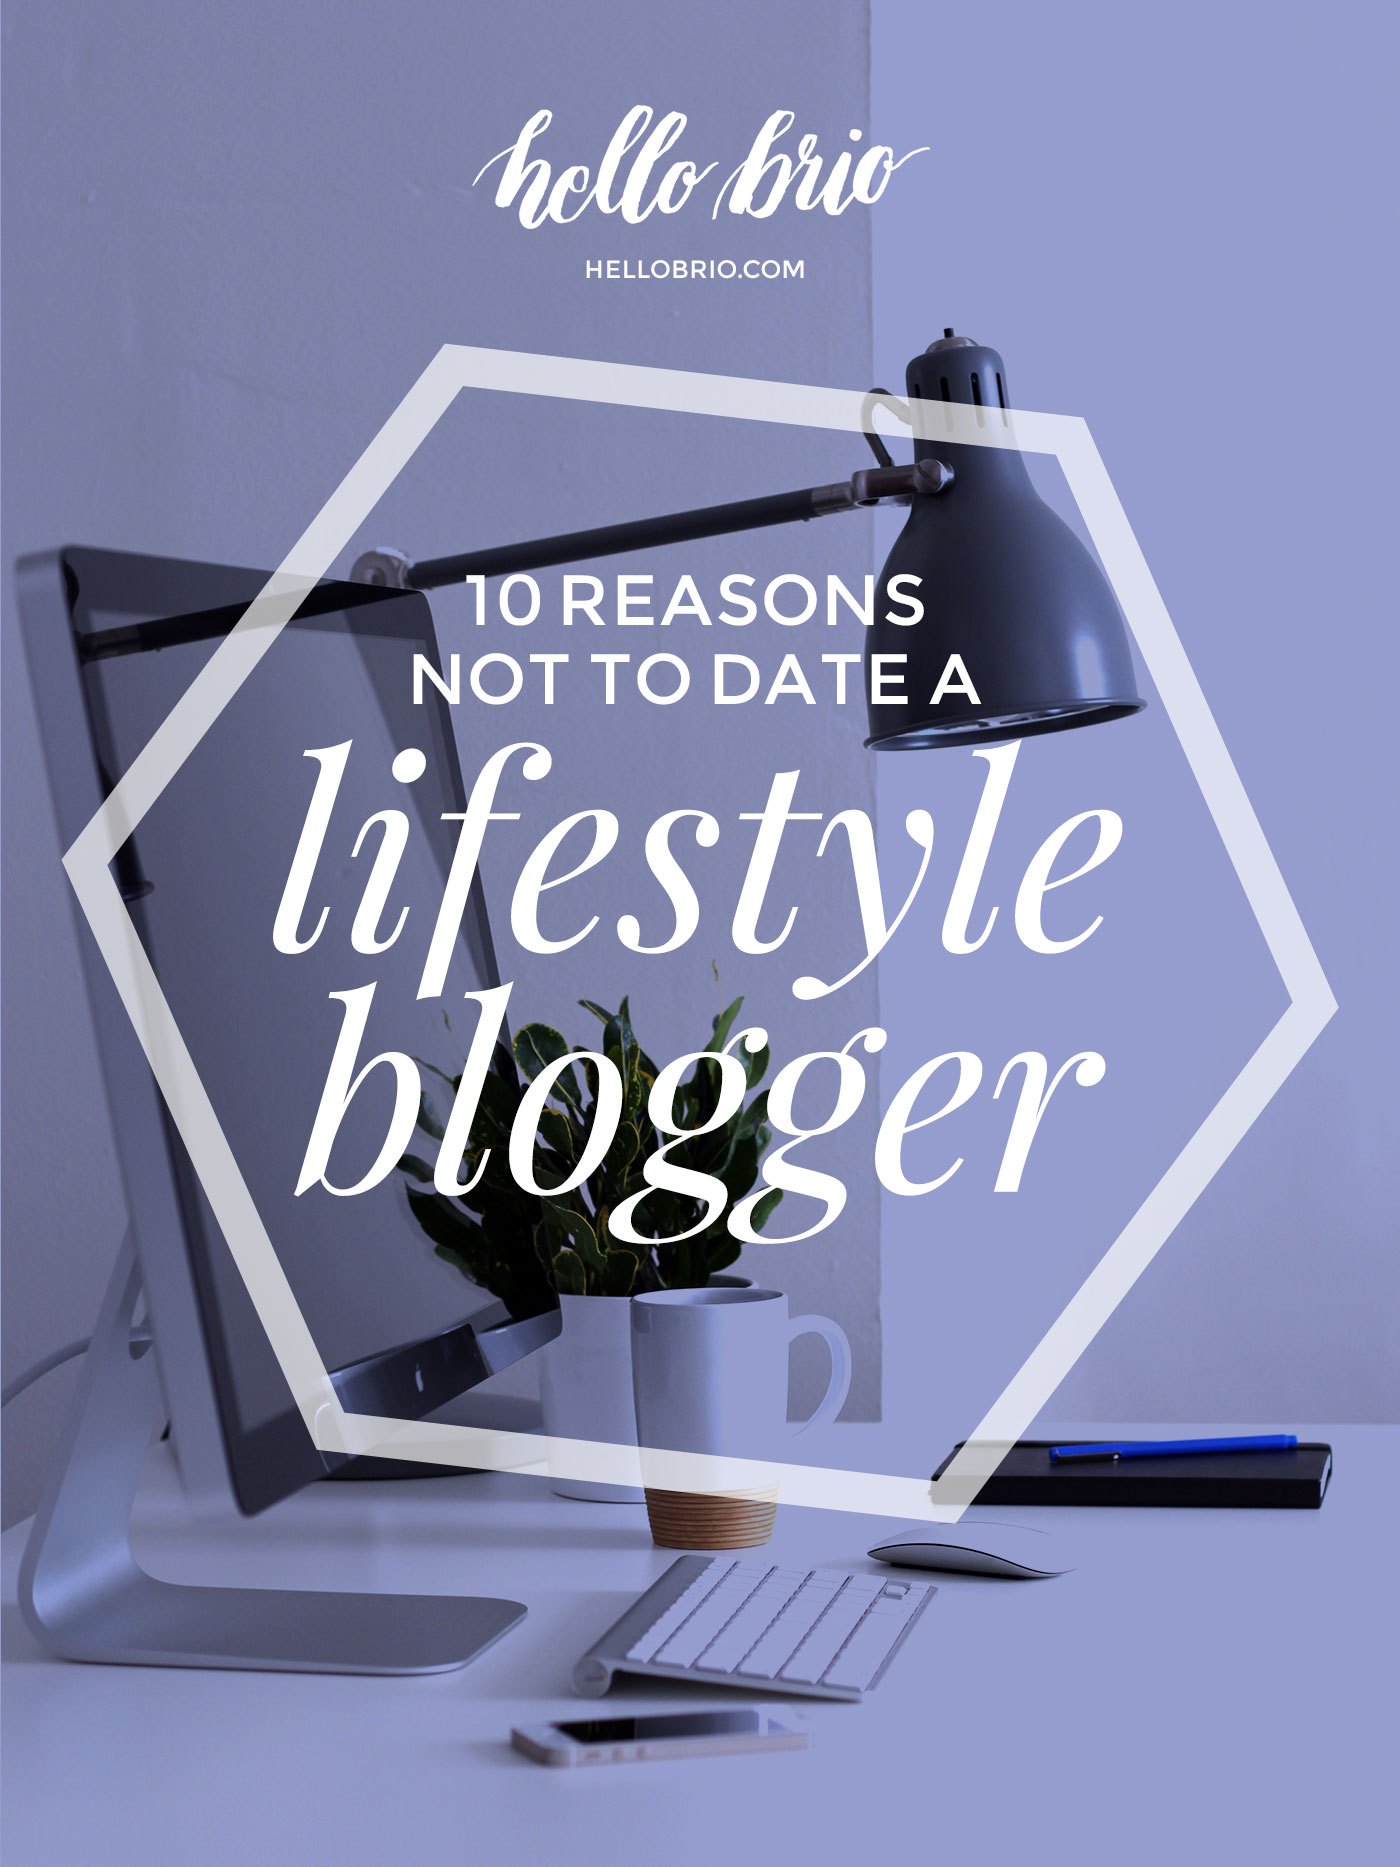 10 Reasons not to date a lifestyle blogger